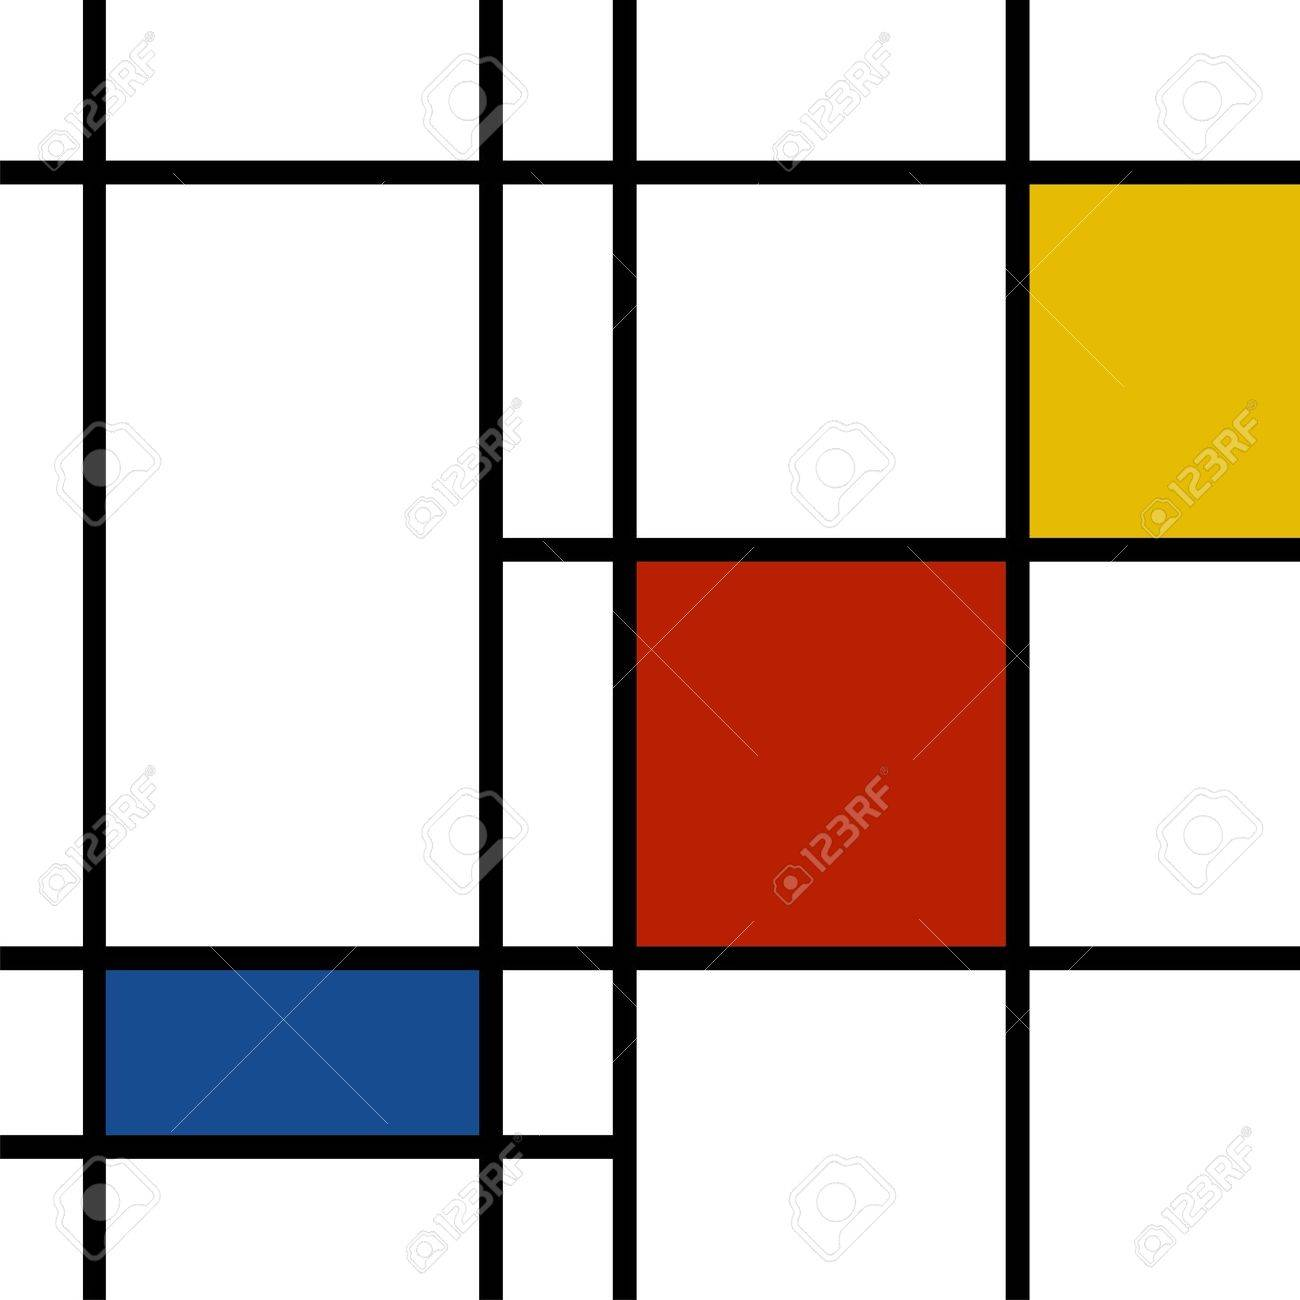 Mondrian Inspired Vibrant Colors Background Stock Photo Picture 1300x1300